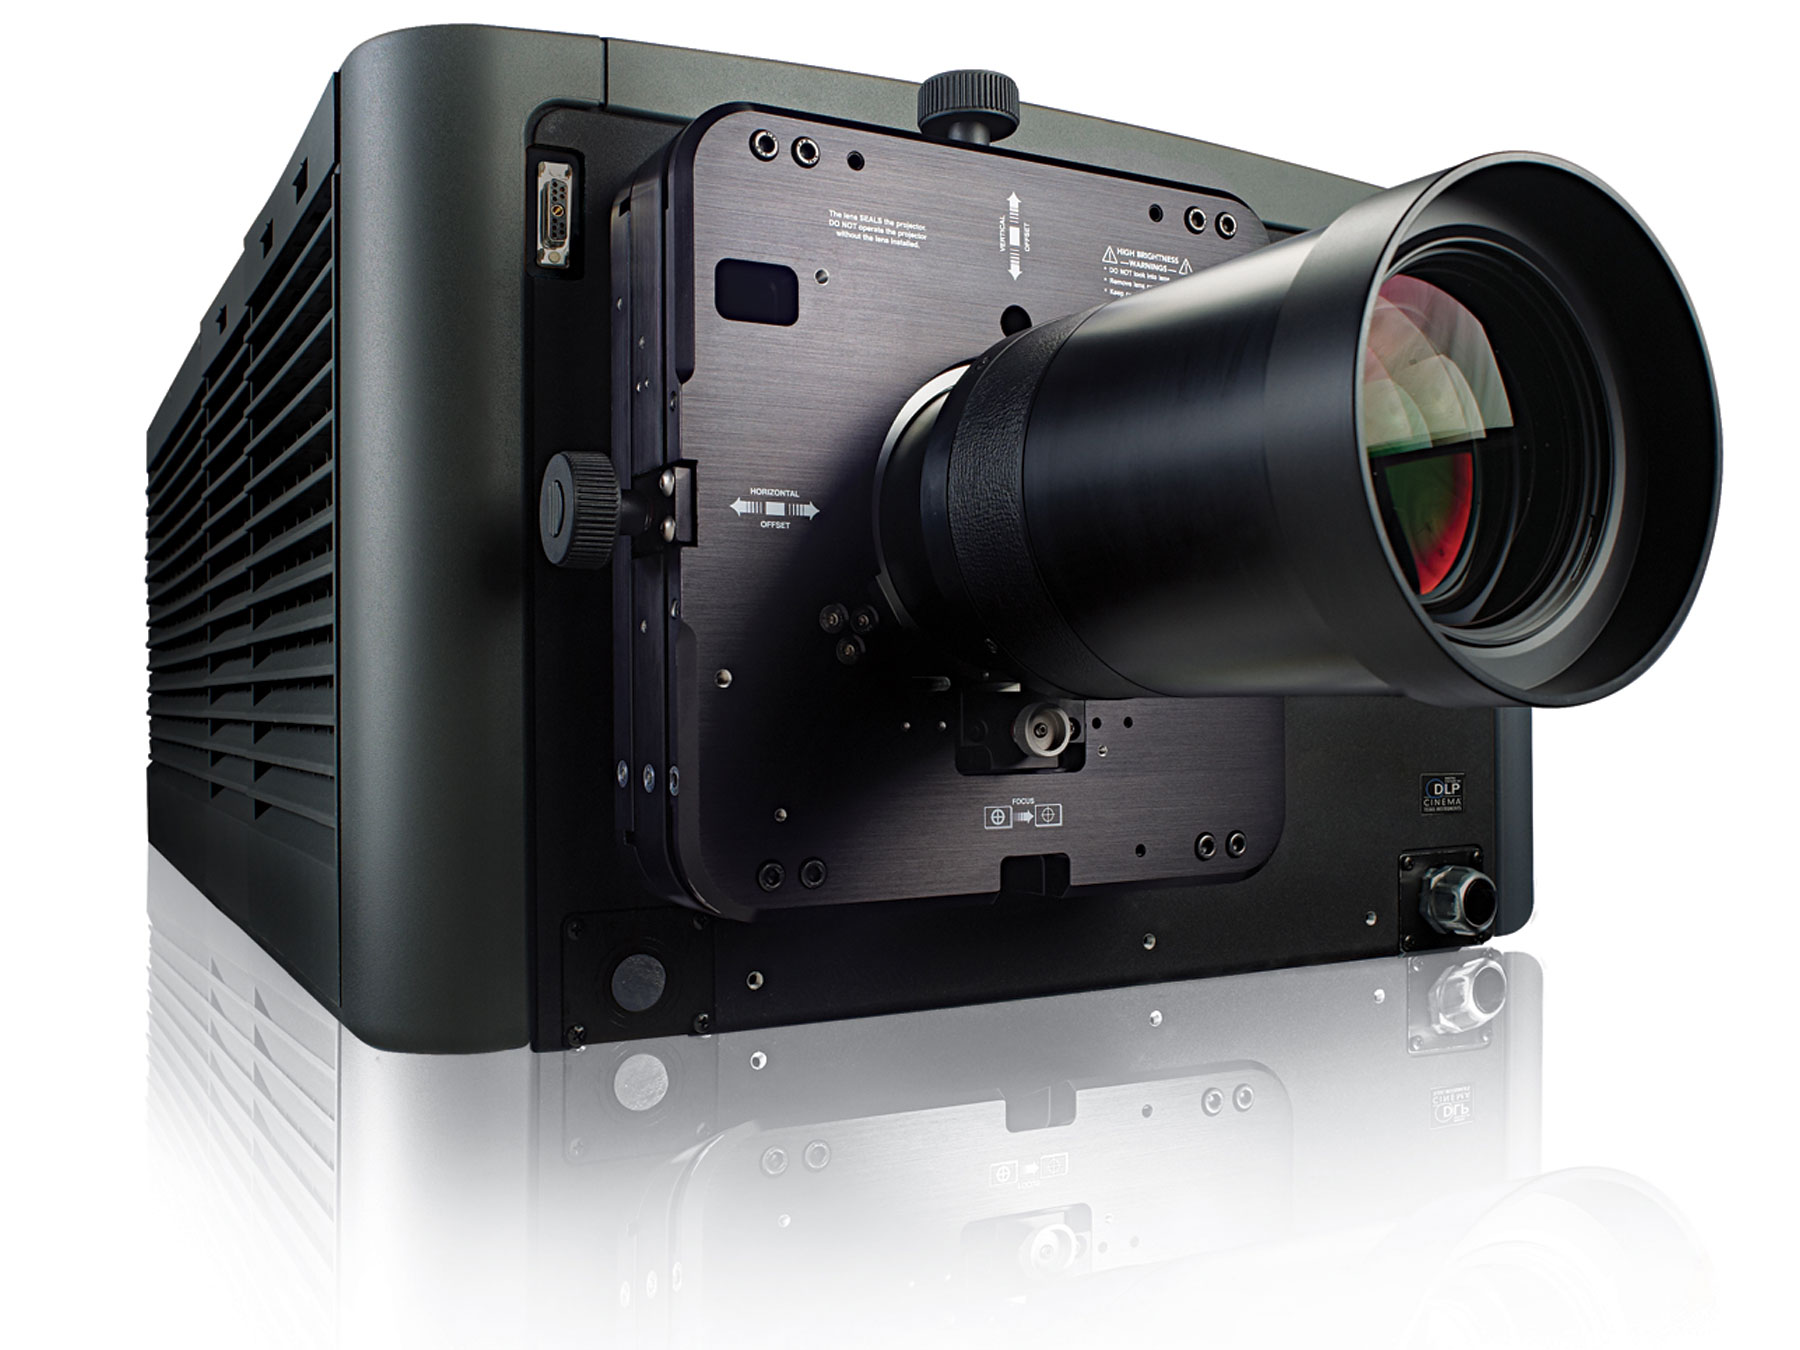 /globalassets/.catalog/products/images/christie-cp2230/gallery/christie-cp2230-digital-cinema-projector-image3.jpg